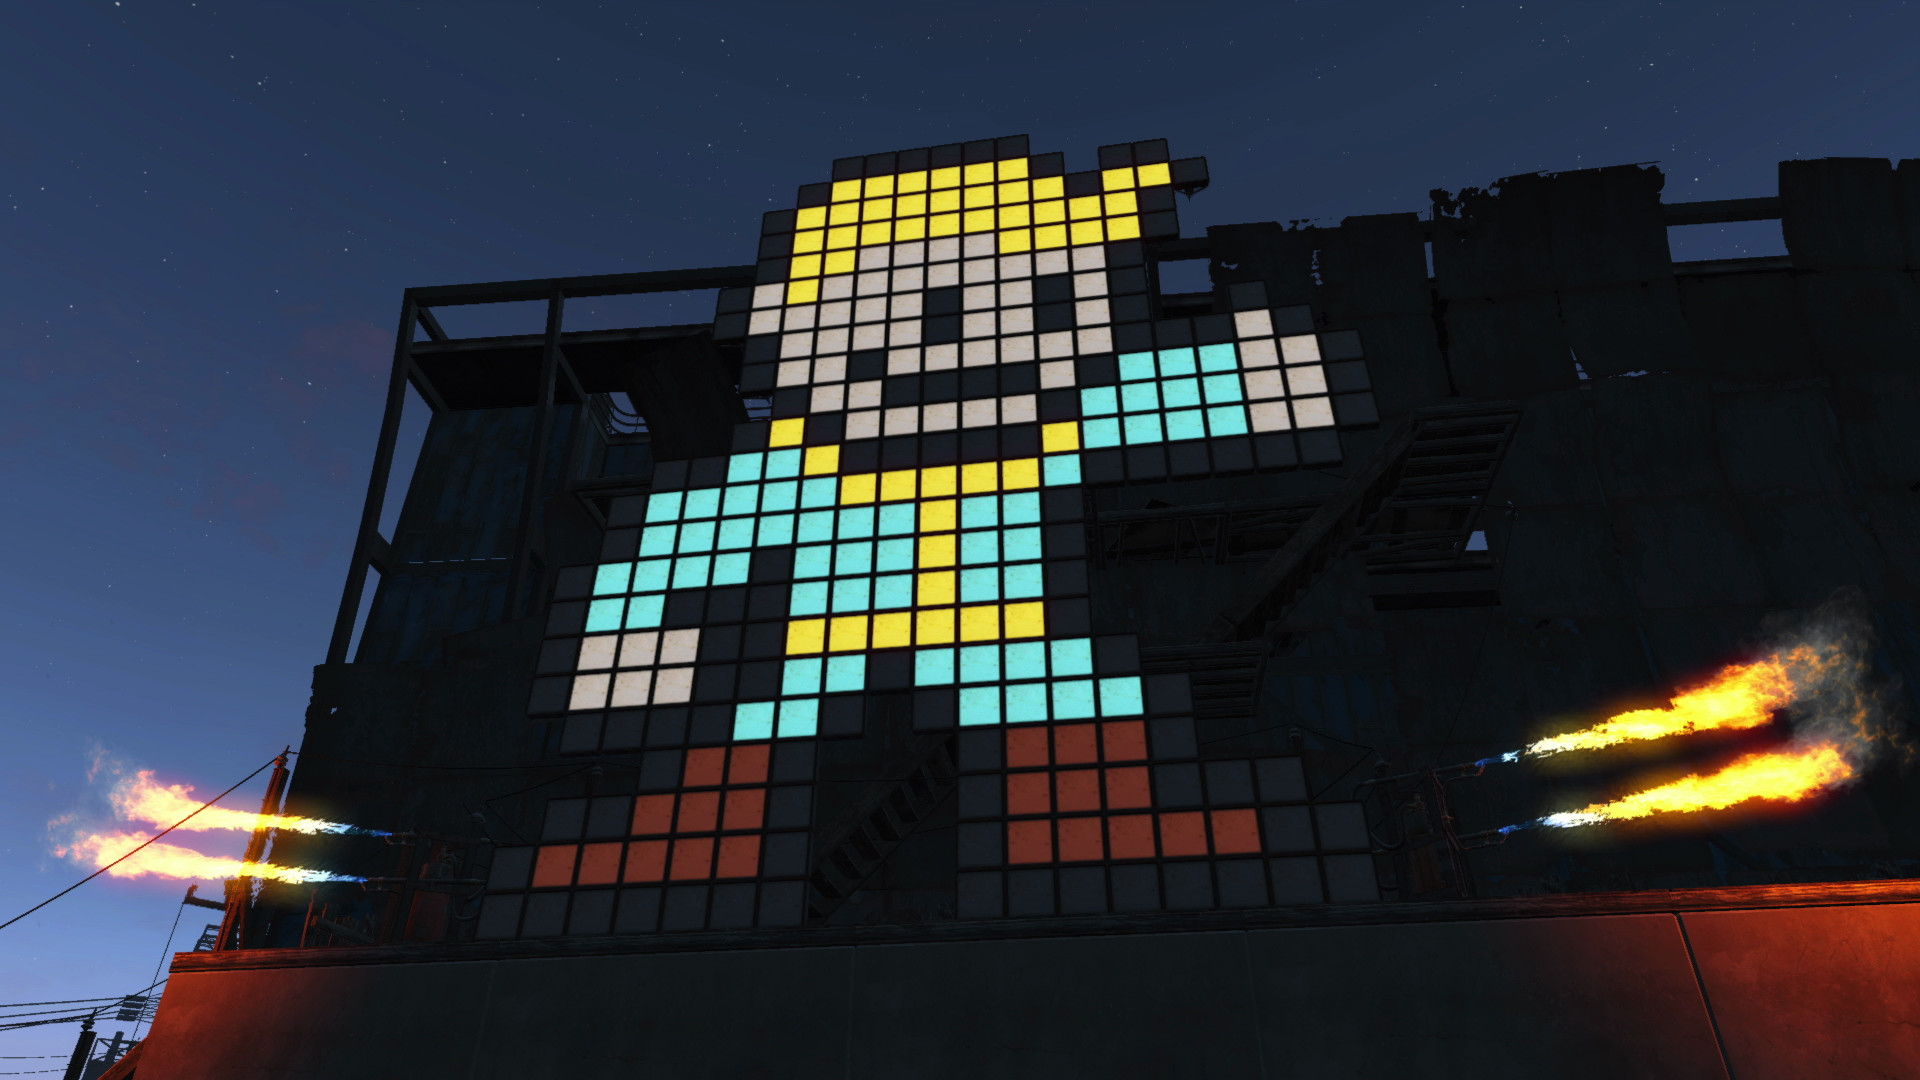 I spent 453 hours in Fallout 4 and all I got was this stinkin' inner peace